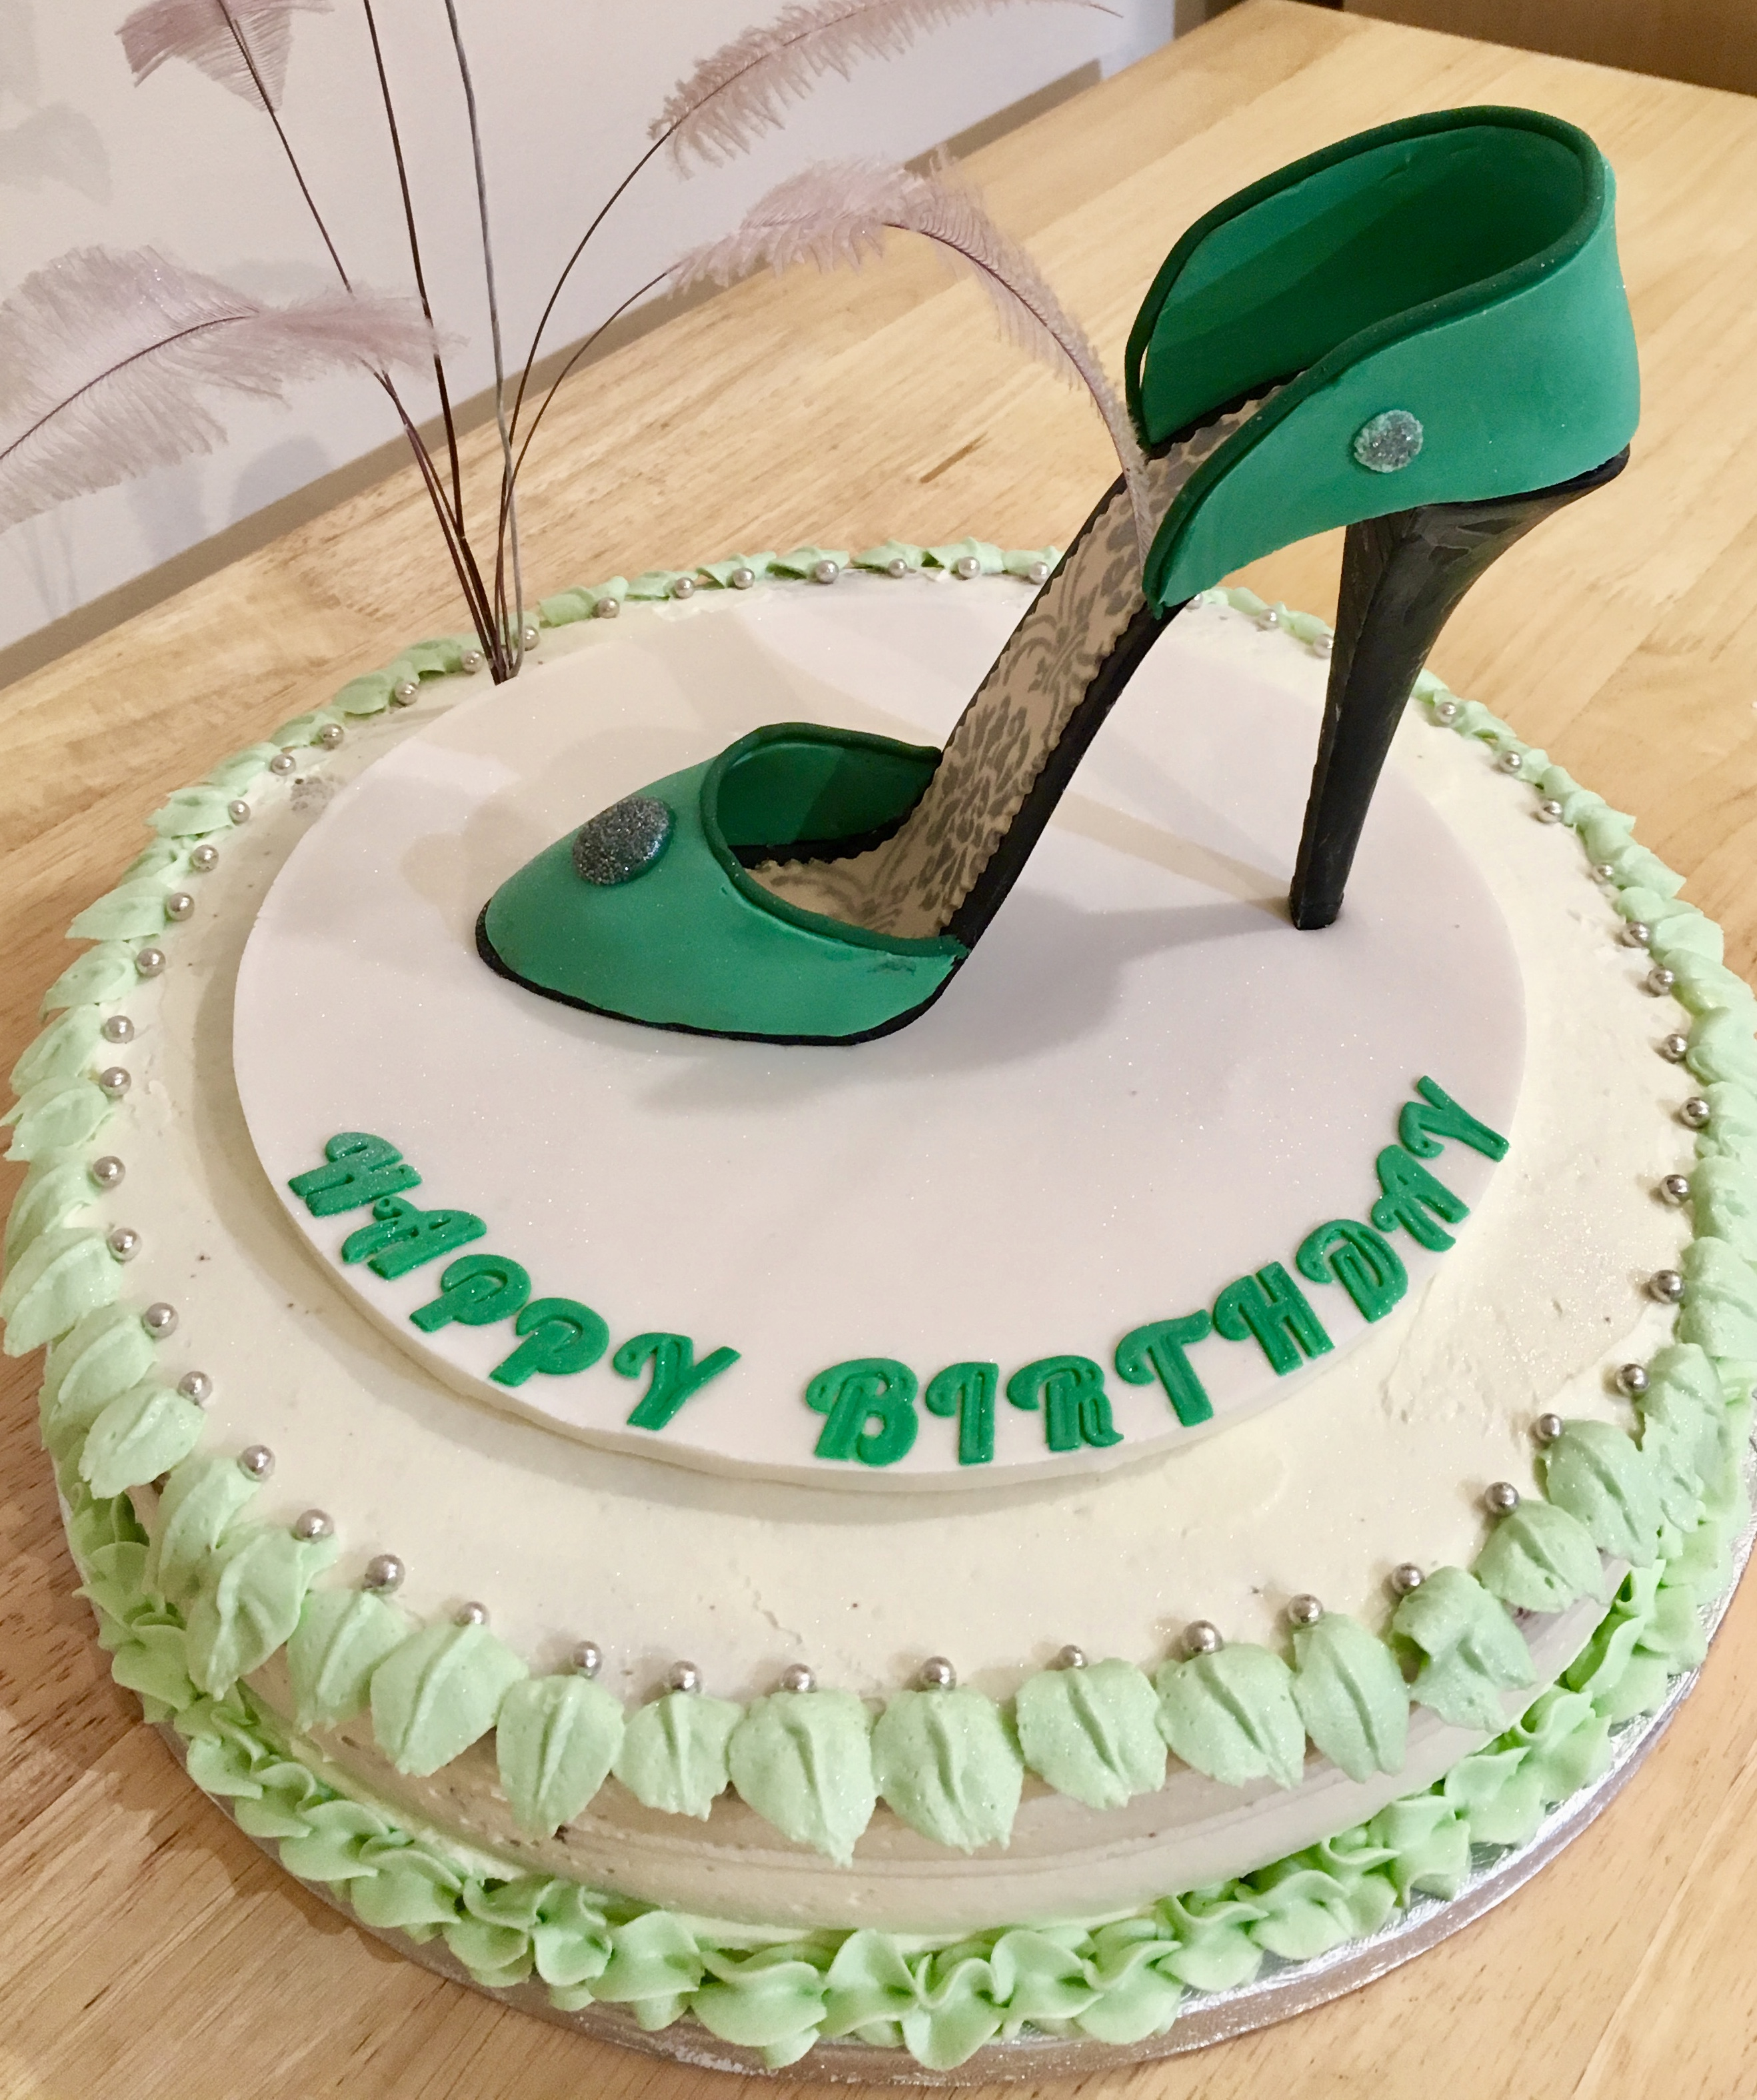 Incredible Adult Birthday Cakes Rochester Cakes Ltd Adult Birthday Cakes Funny Birthday Cards Online Fluifree Goldxyz